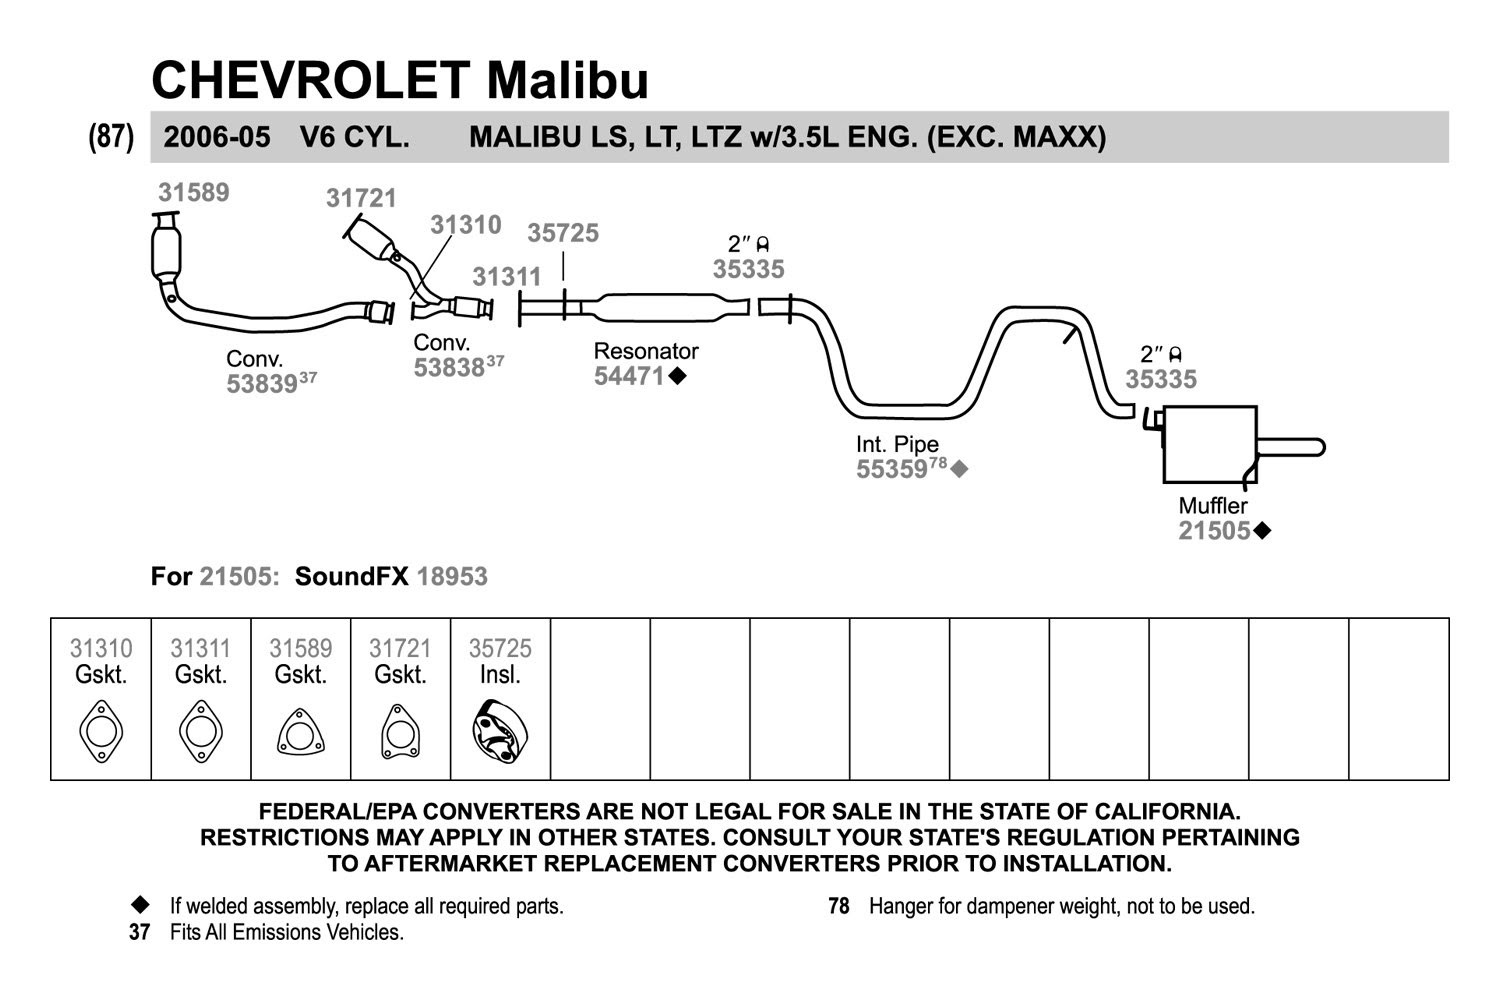 29 2004 Chevy Malibu Exhaust System Diagram